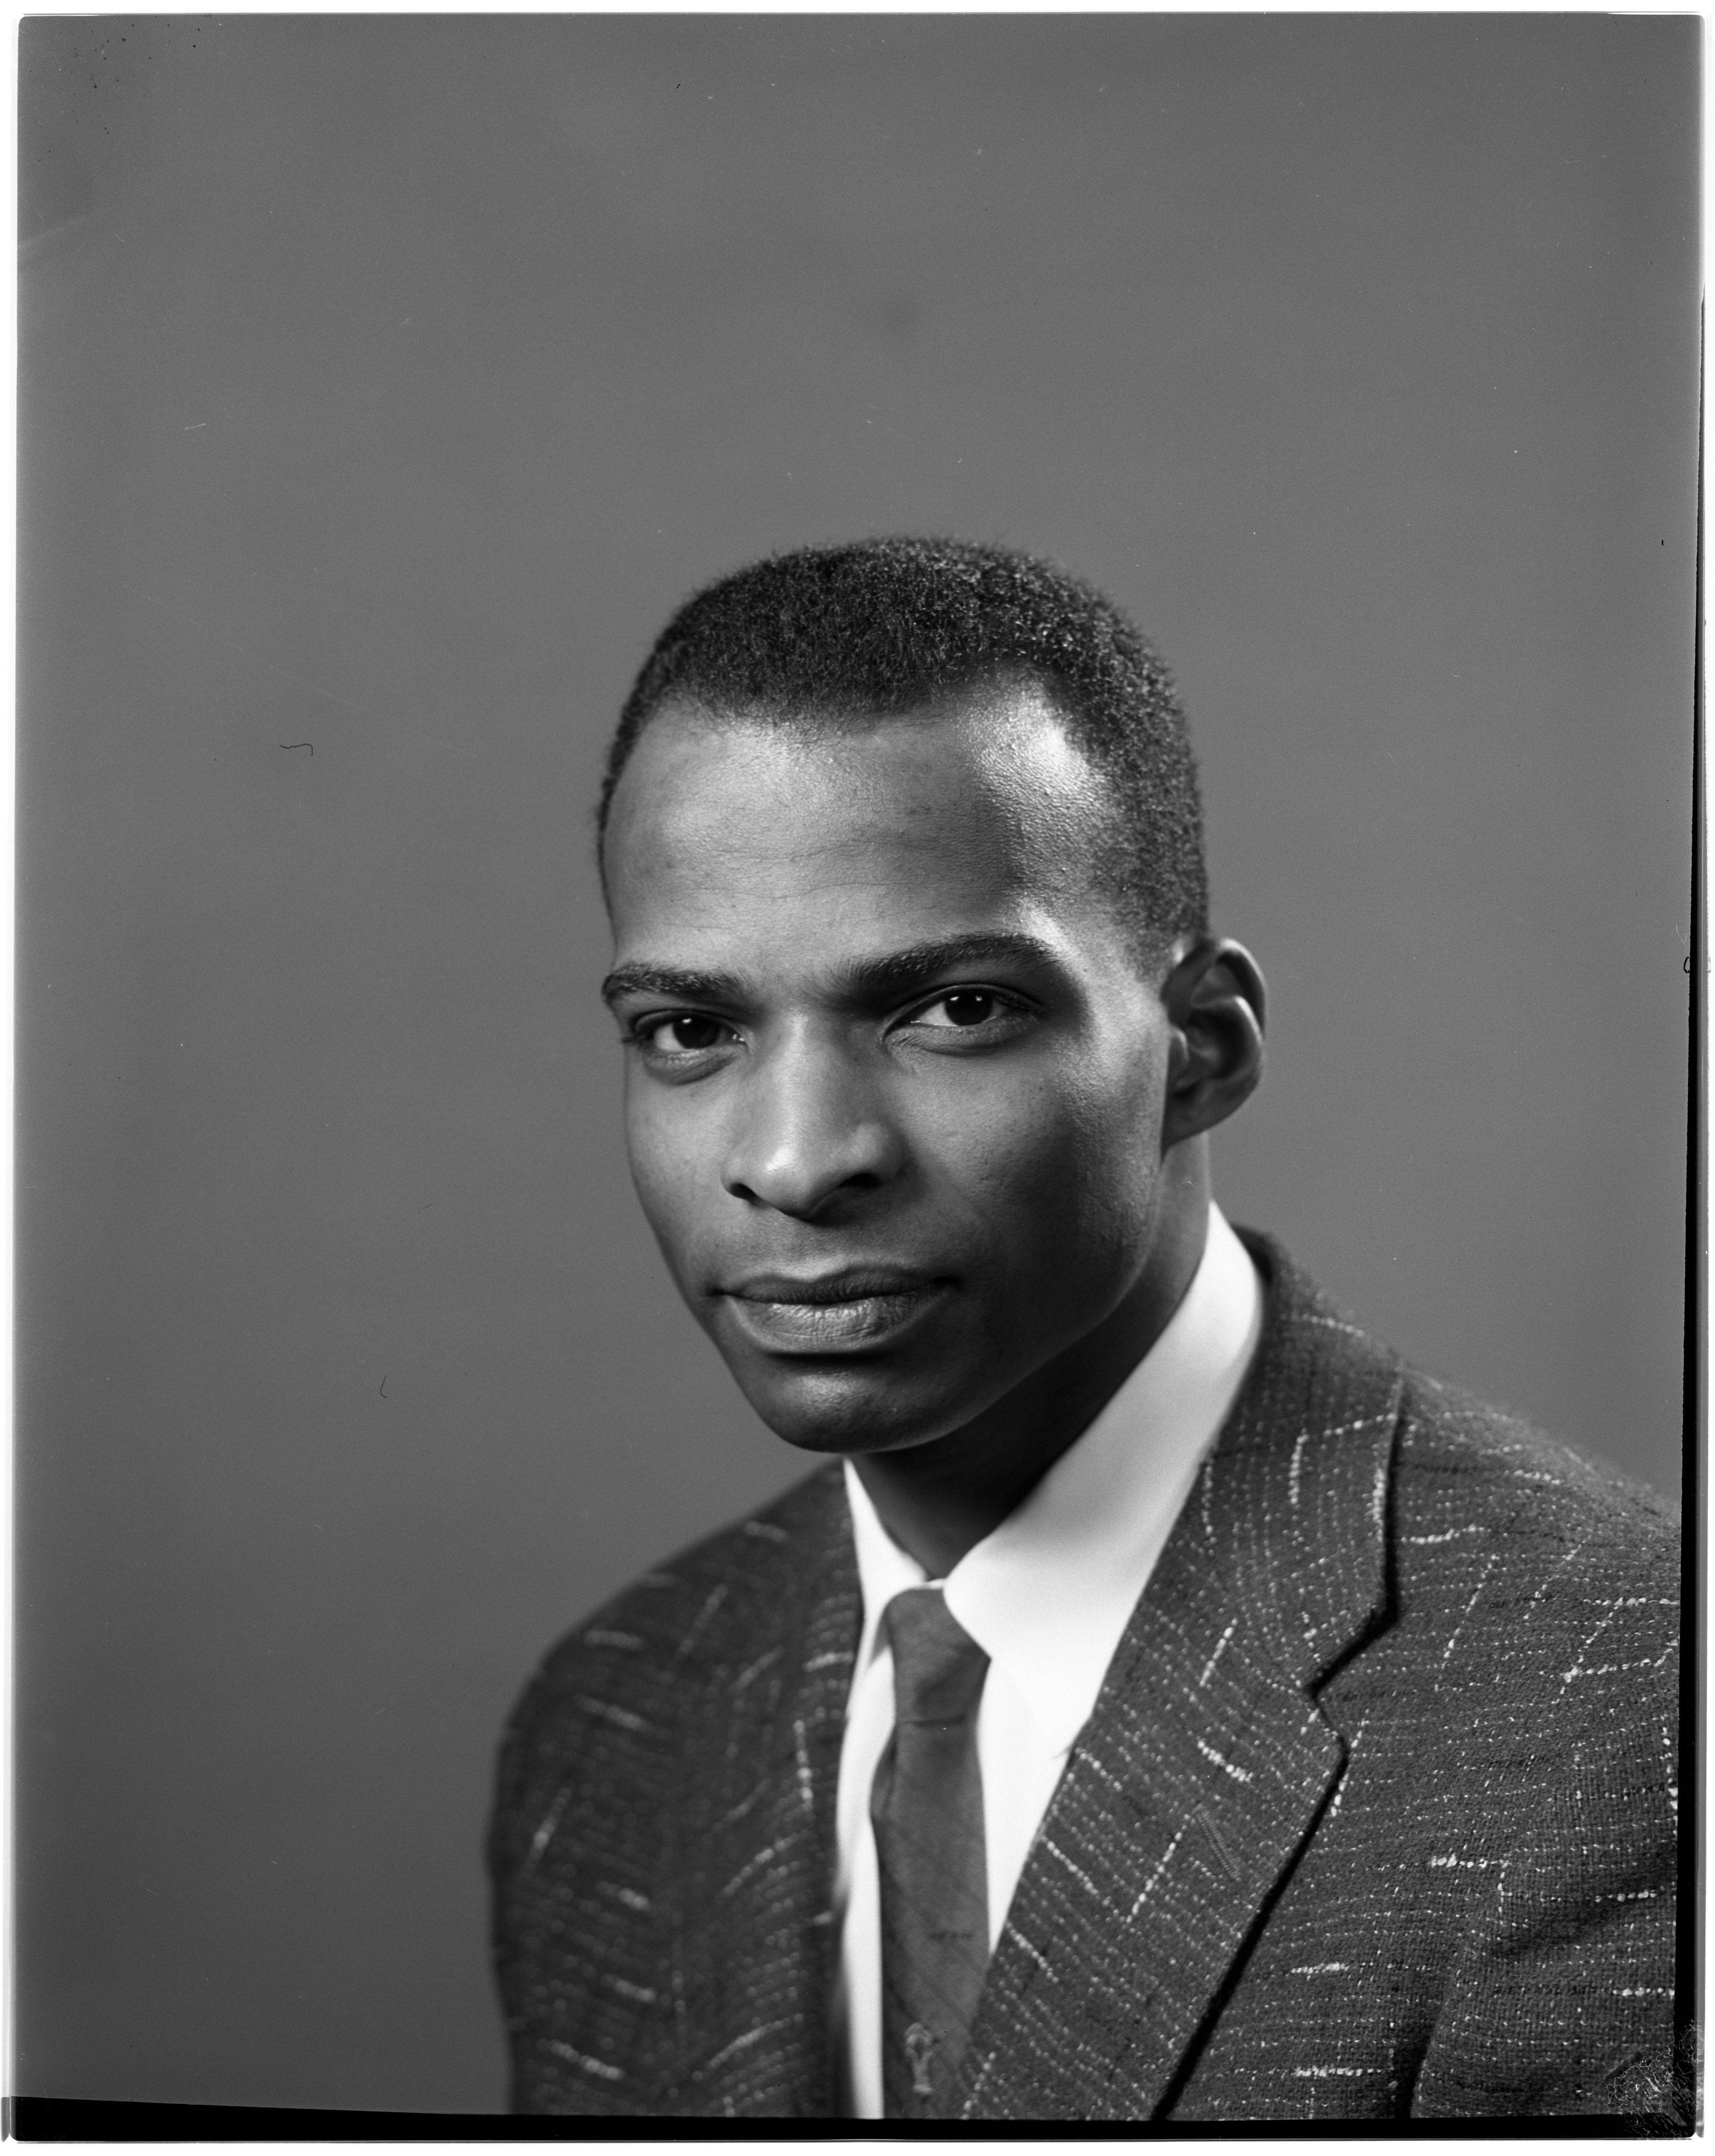 Portrait of James Horn, March 1956 image